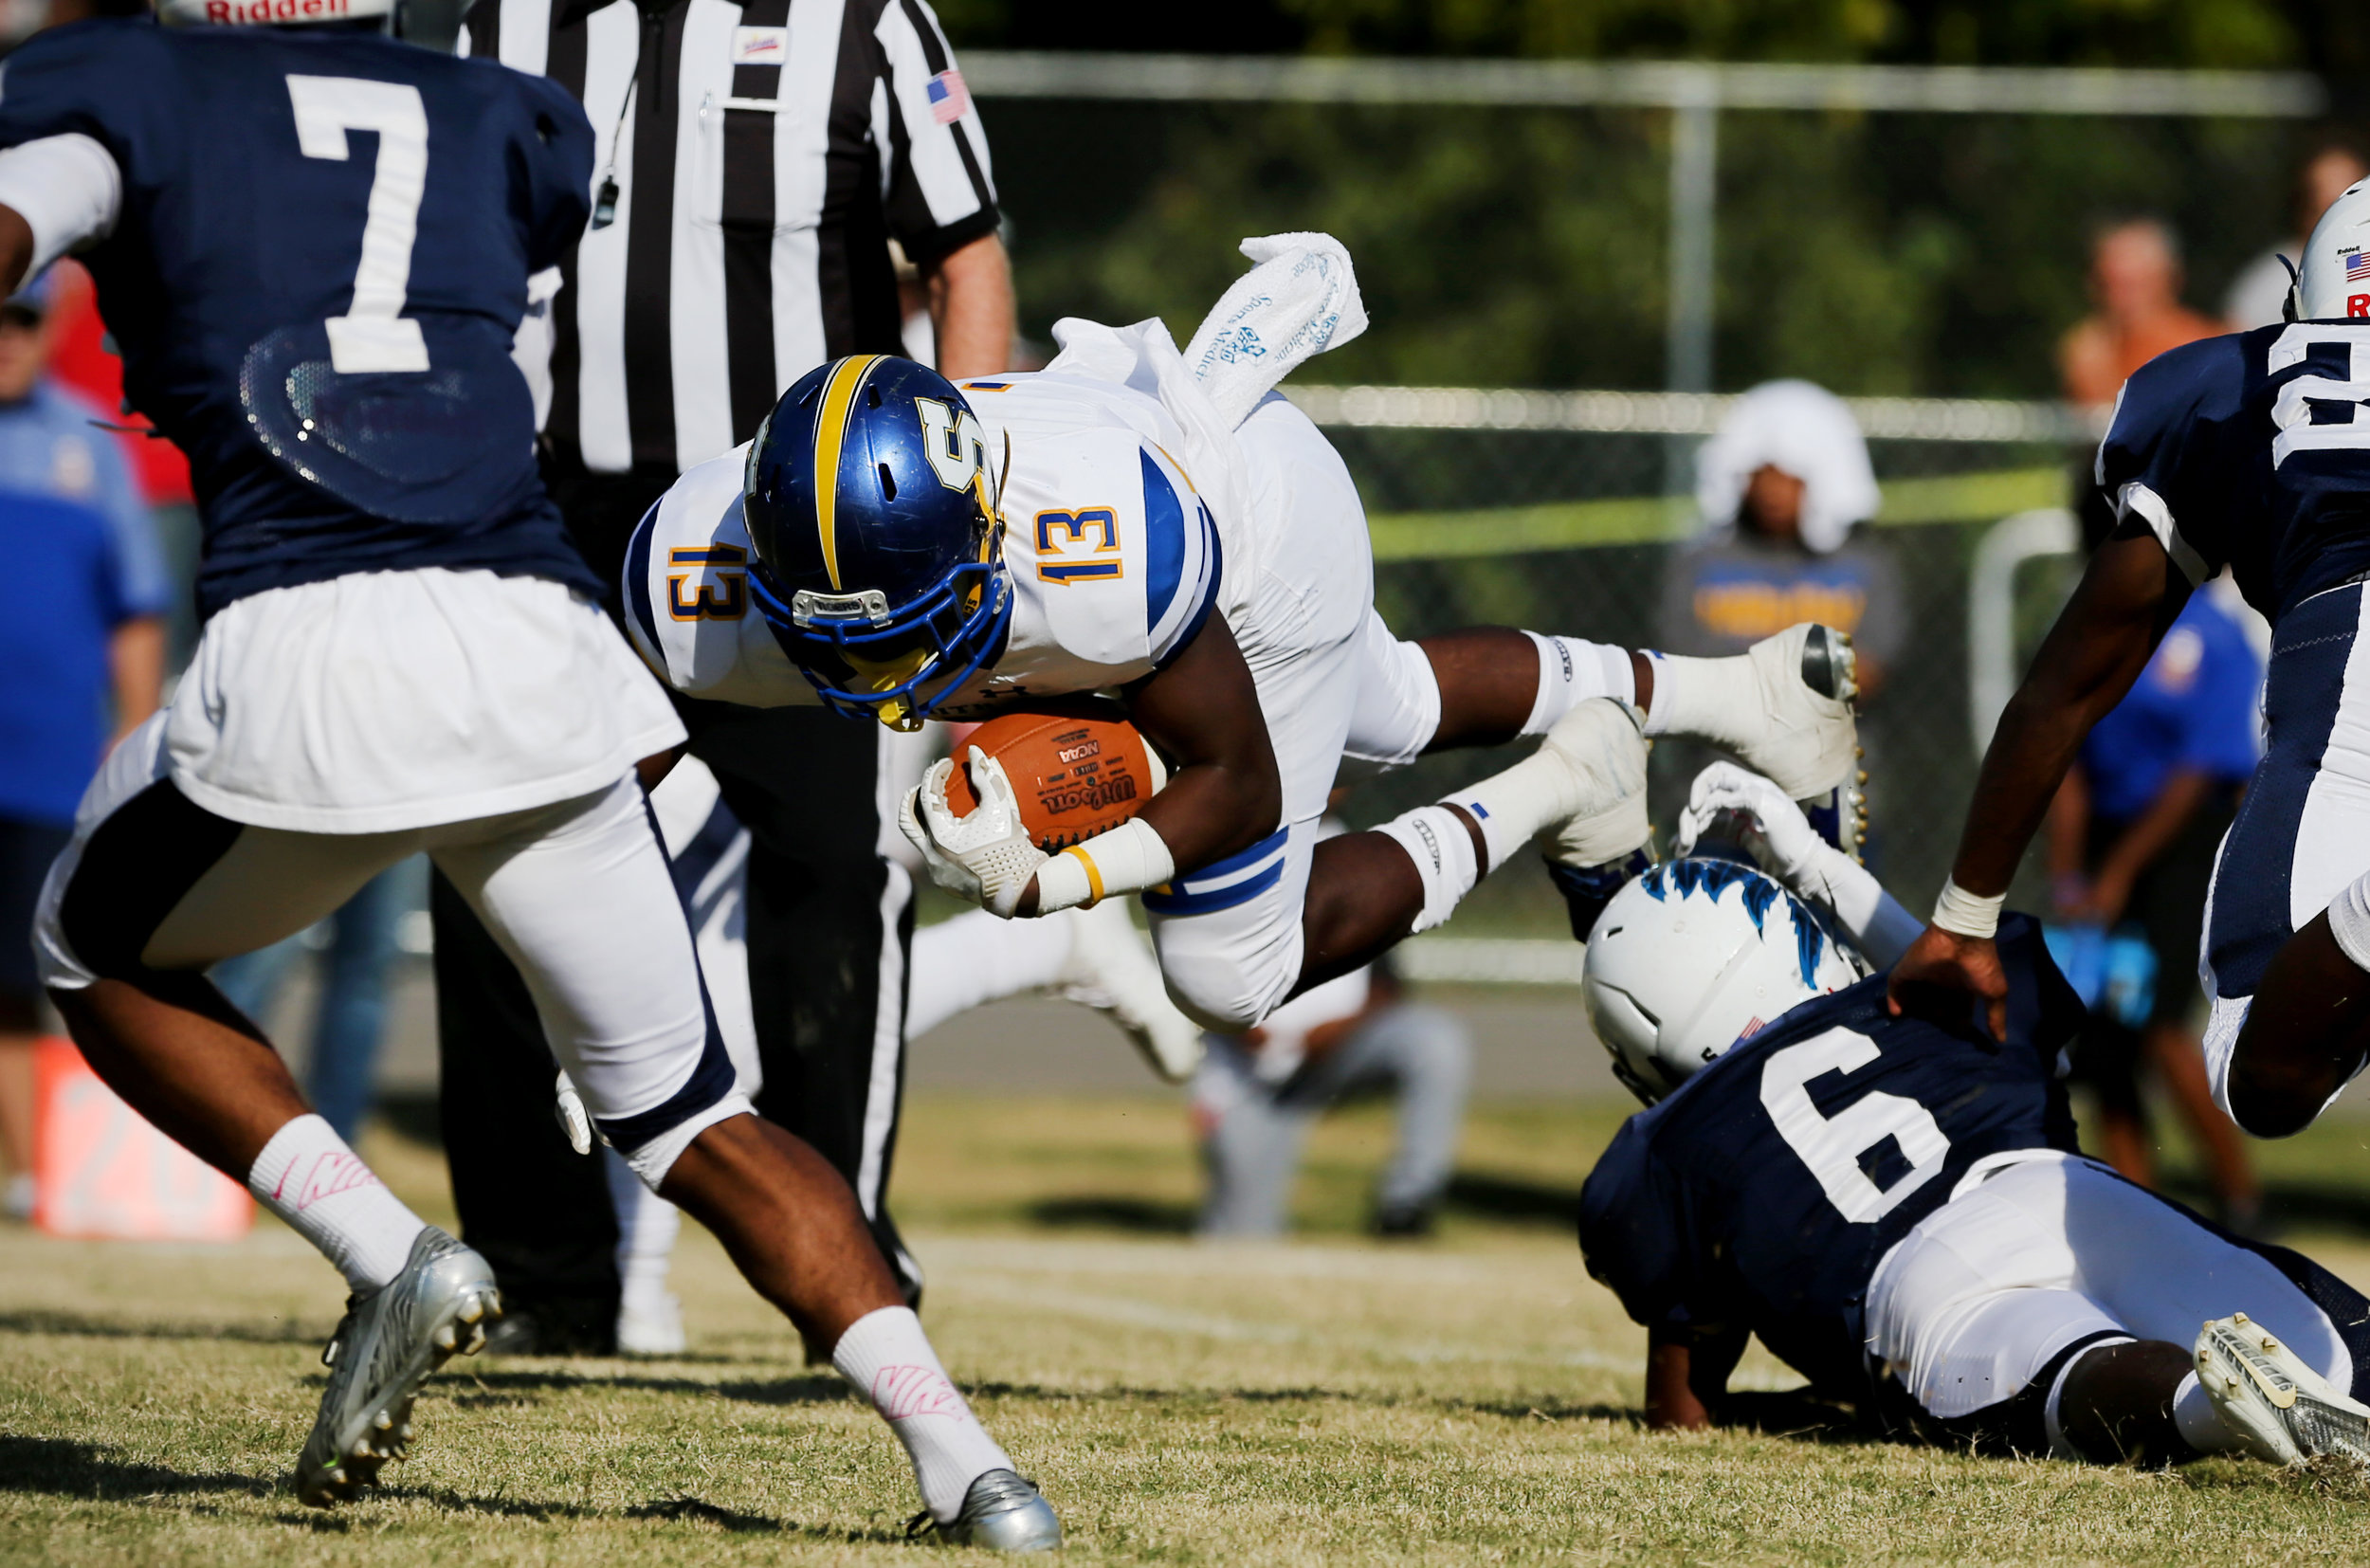 Oscar Smith's Deangelo White goes airborne after being tripped up by Indian River's Demetri Payne during the Tigers' 35-14 win, Saturday, Oct. 21, 2017 at Indian River High School in Chesapeake.